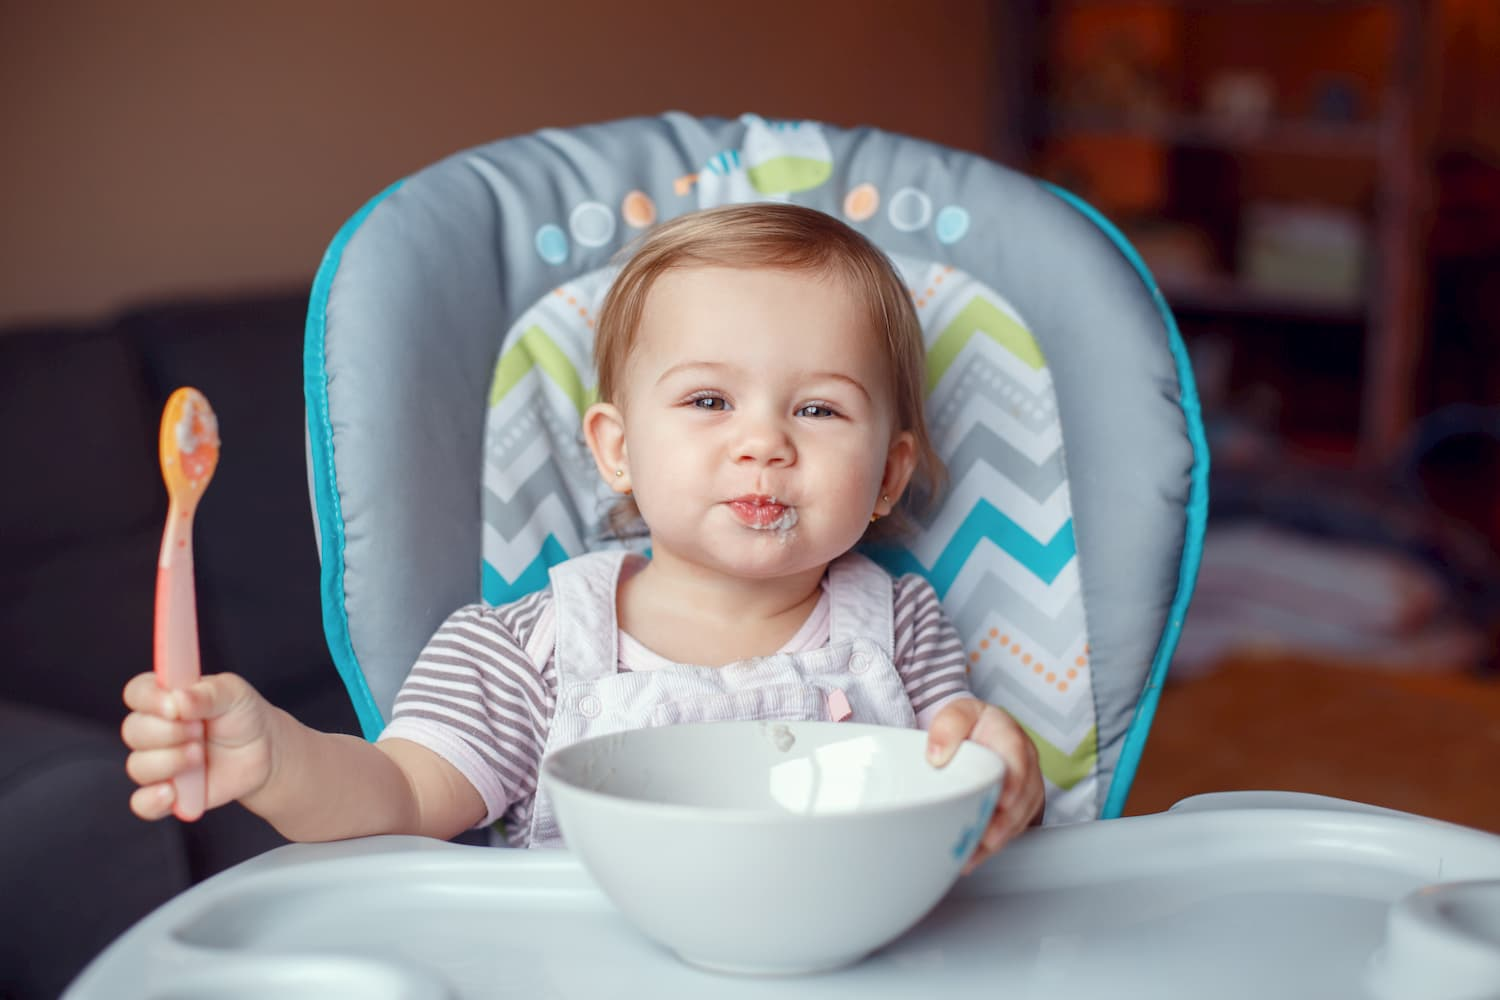 High Chair With a Baby Girl Who Eats Cereal